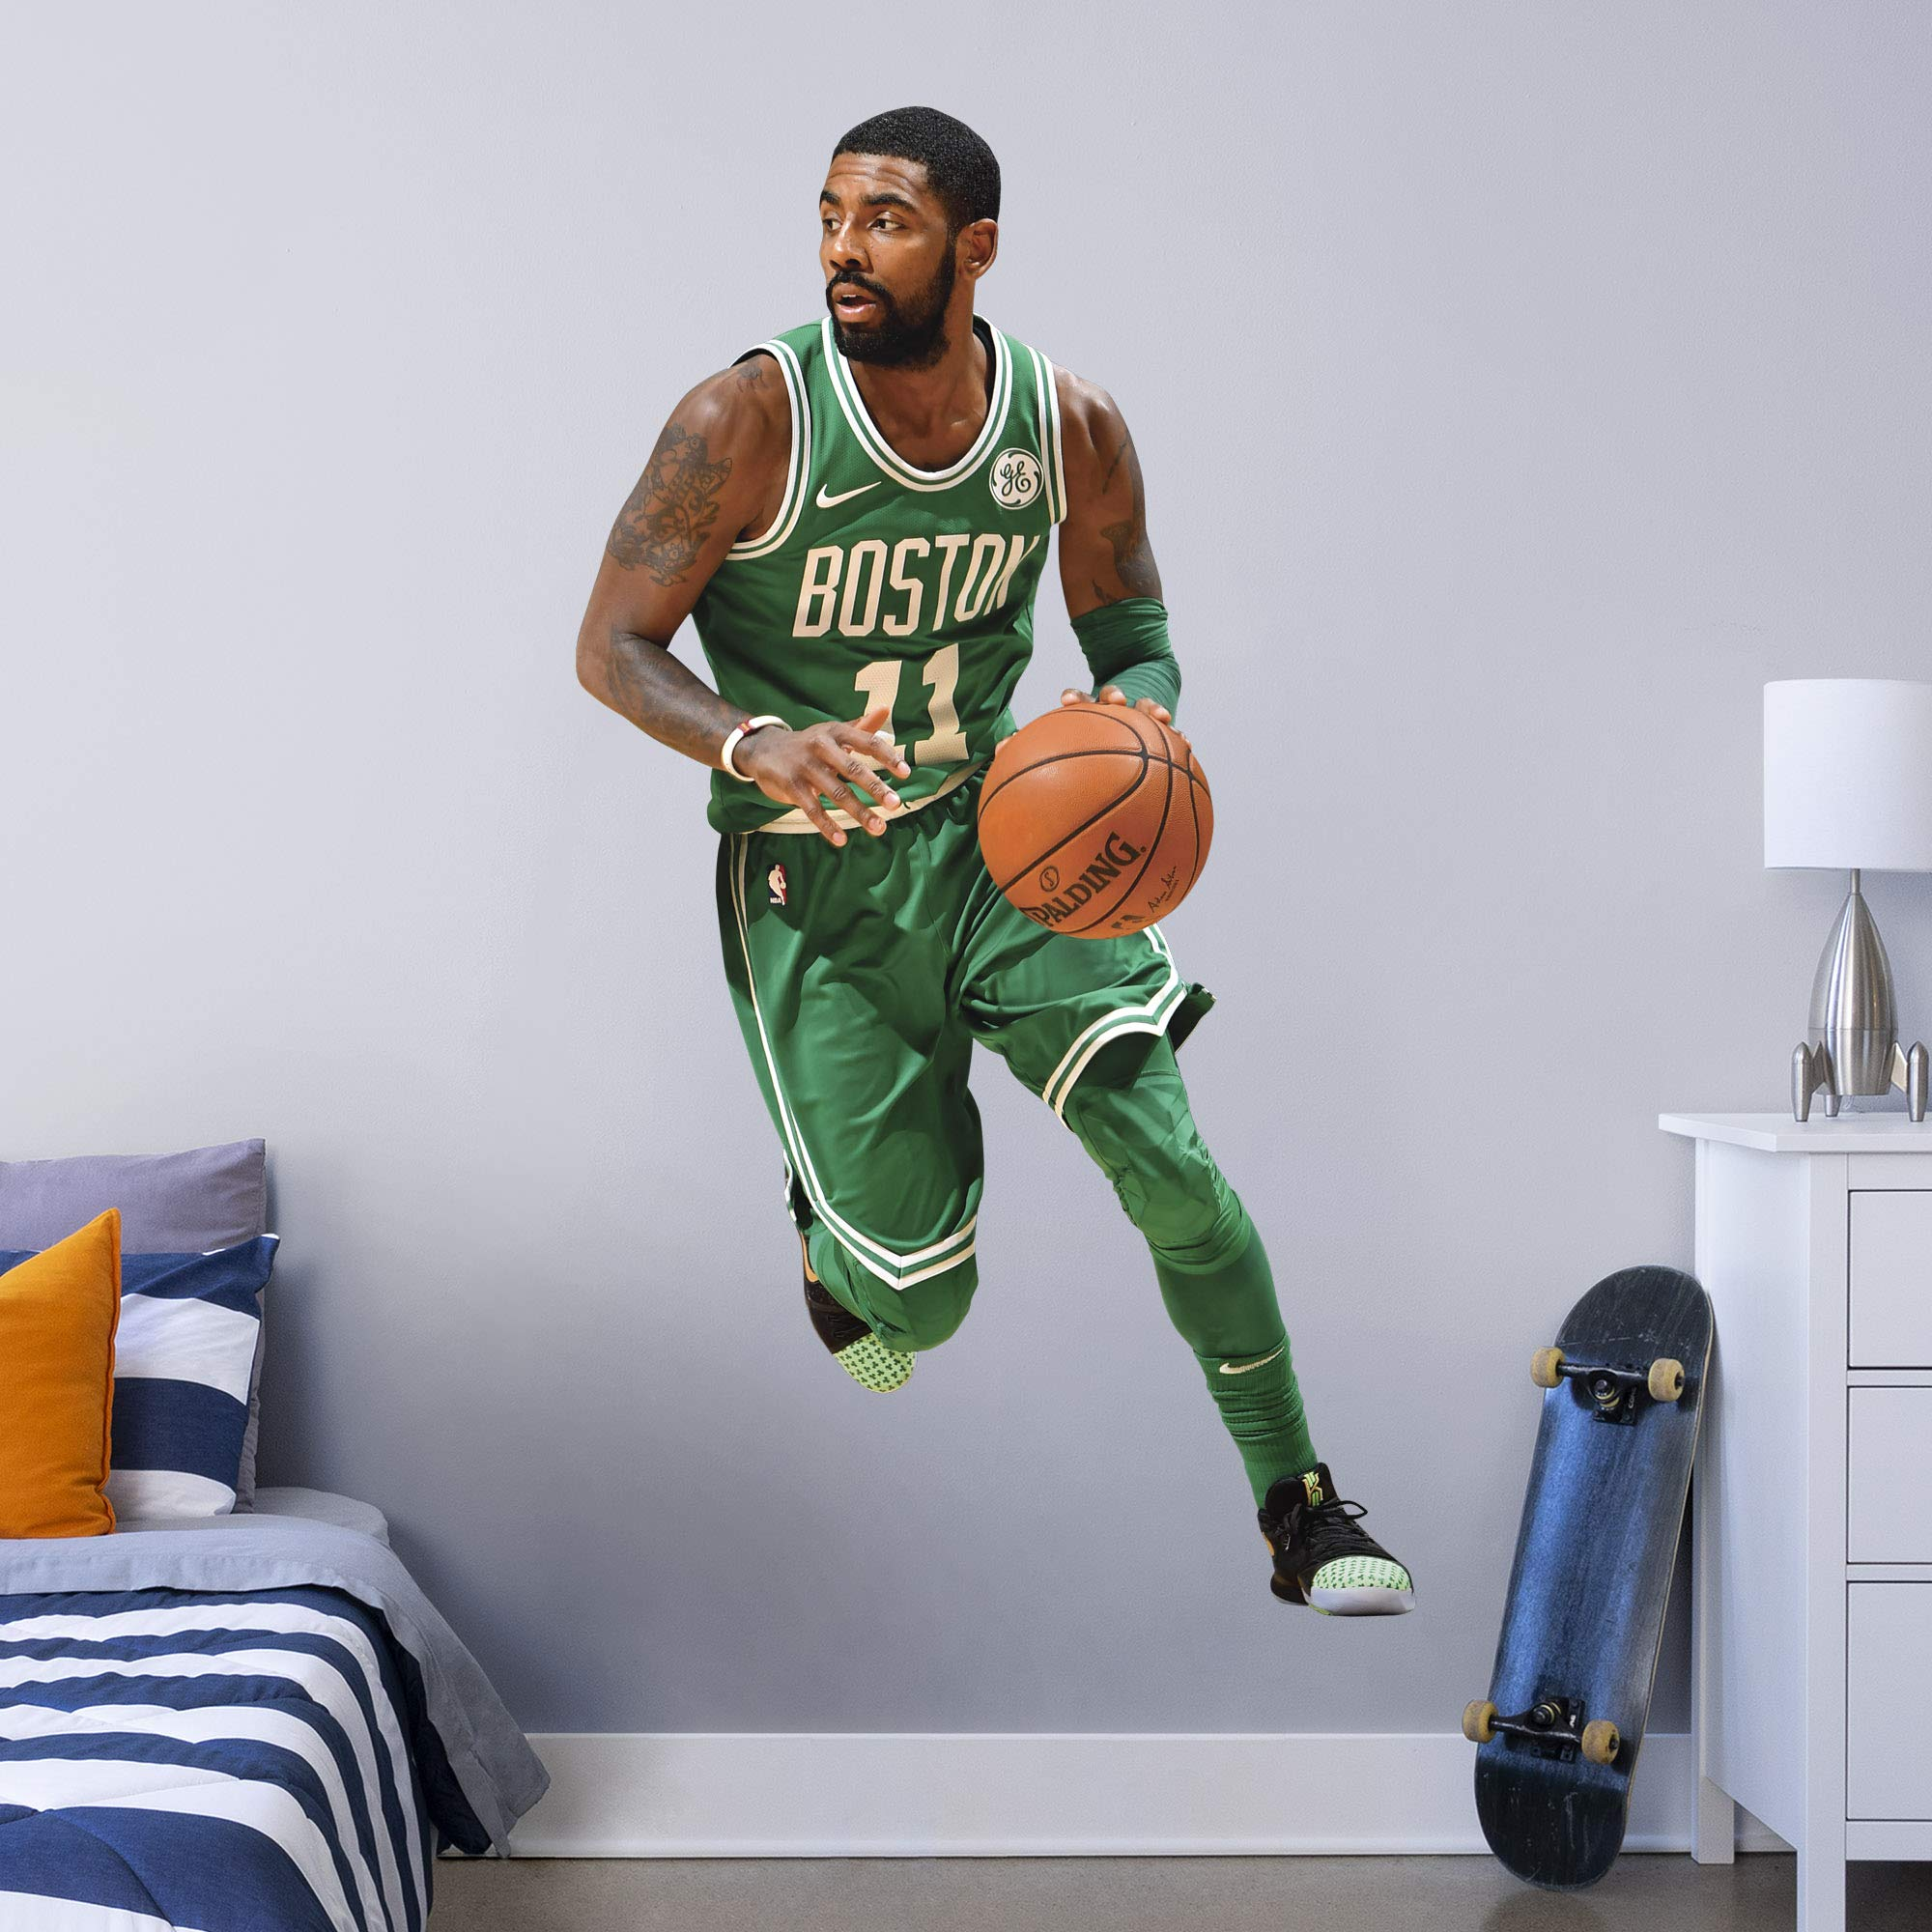 Fathead NBA Boston Celtics Kyrie Irving Kyrie Irving- Officially Licensed Removable Wall Decal, Multicolor, Life-Size - 1900-00305-002 by FATHEAD